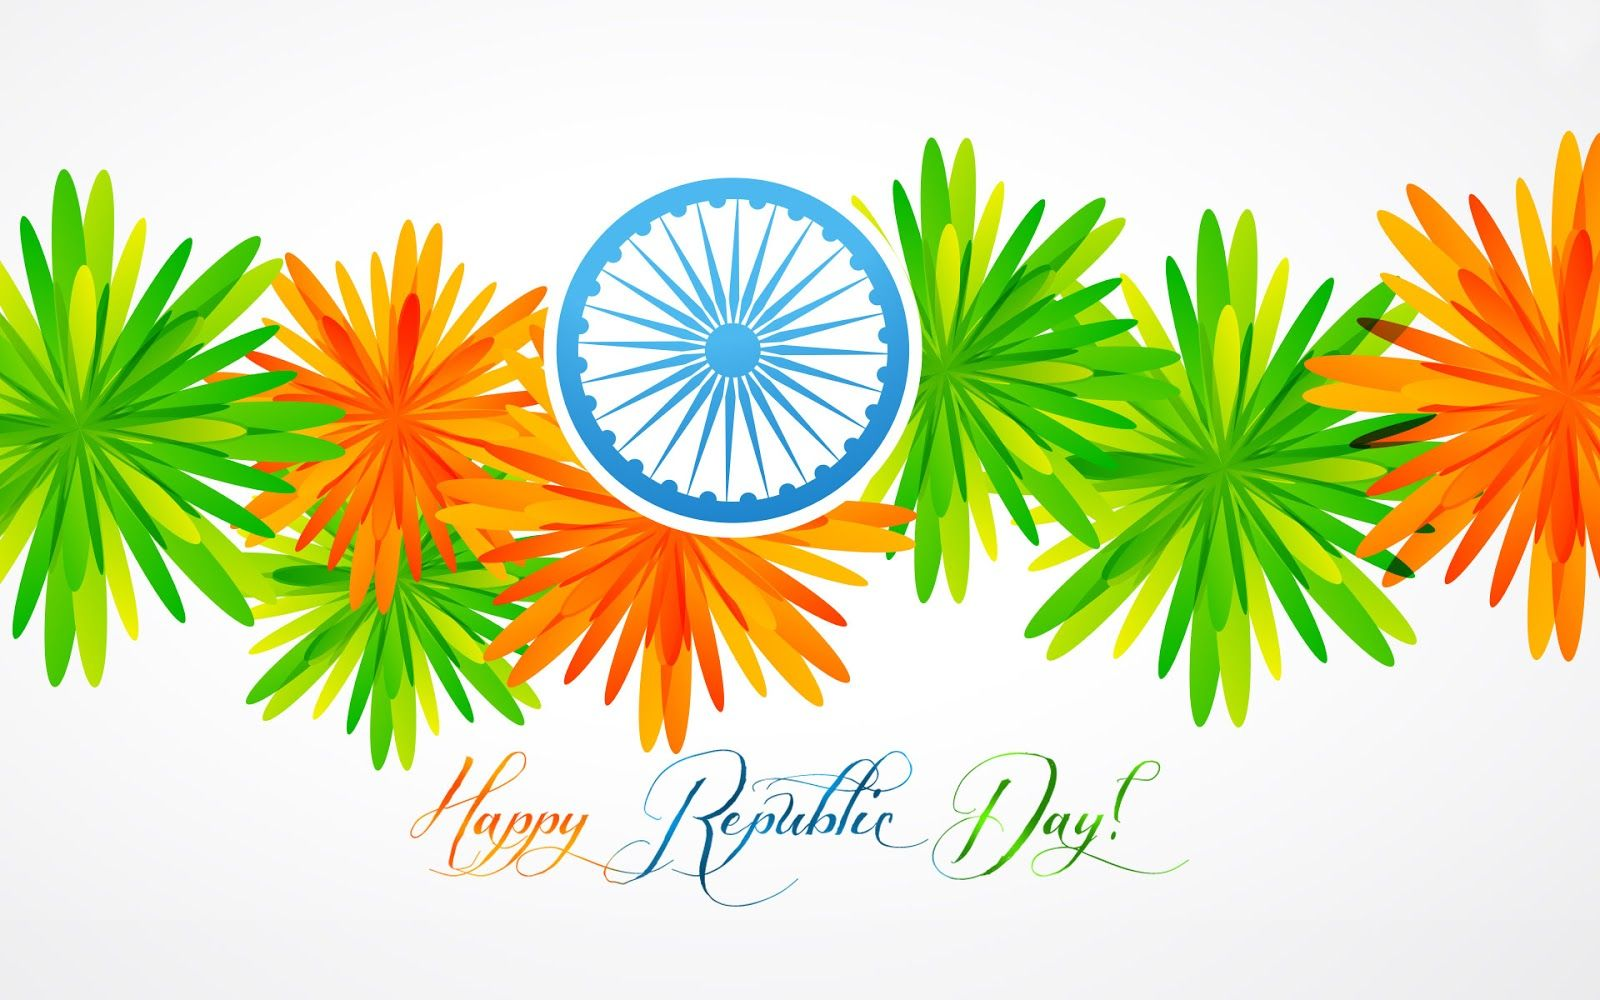 Happy Republic Day January 26, 2020 Images, Pictures and